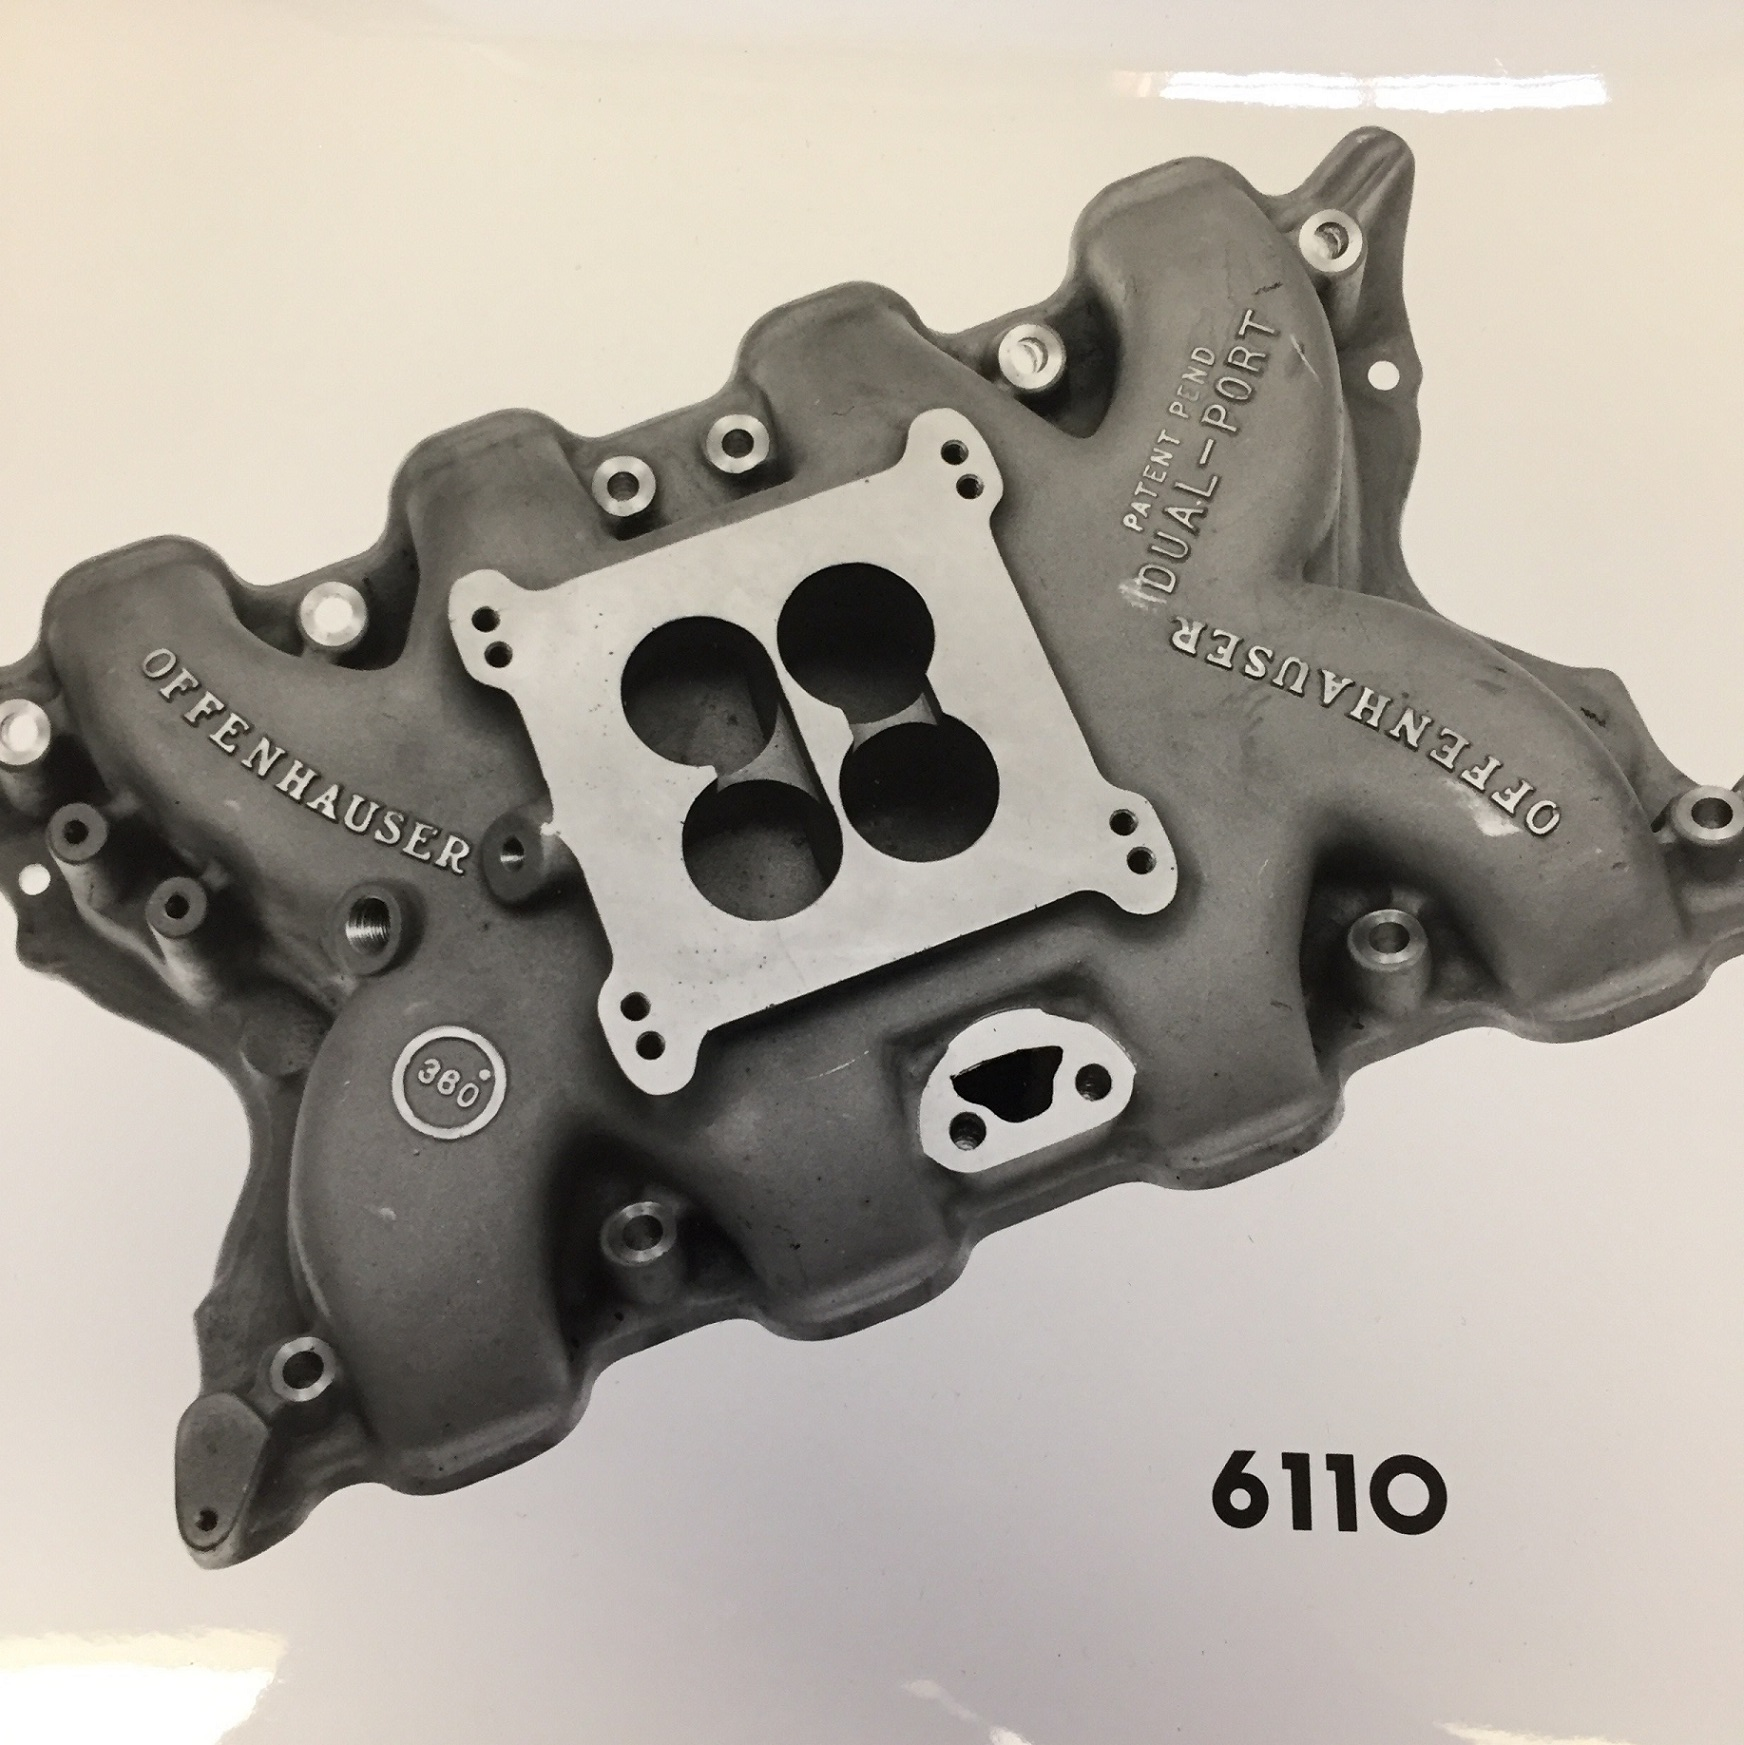 Offenhauser #6110 DP Ford 351 Cleveland 2V Intake Manifold